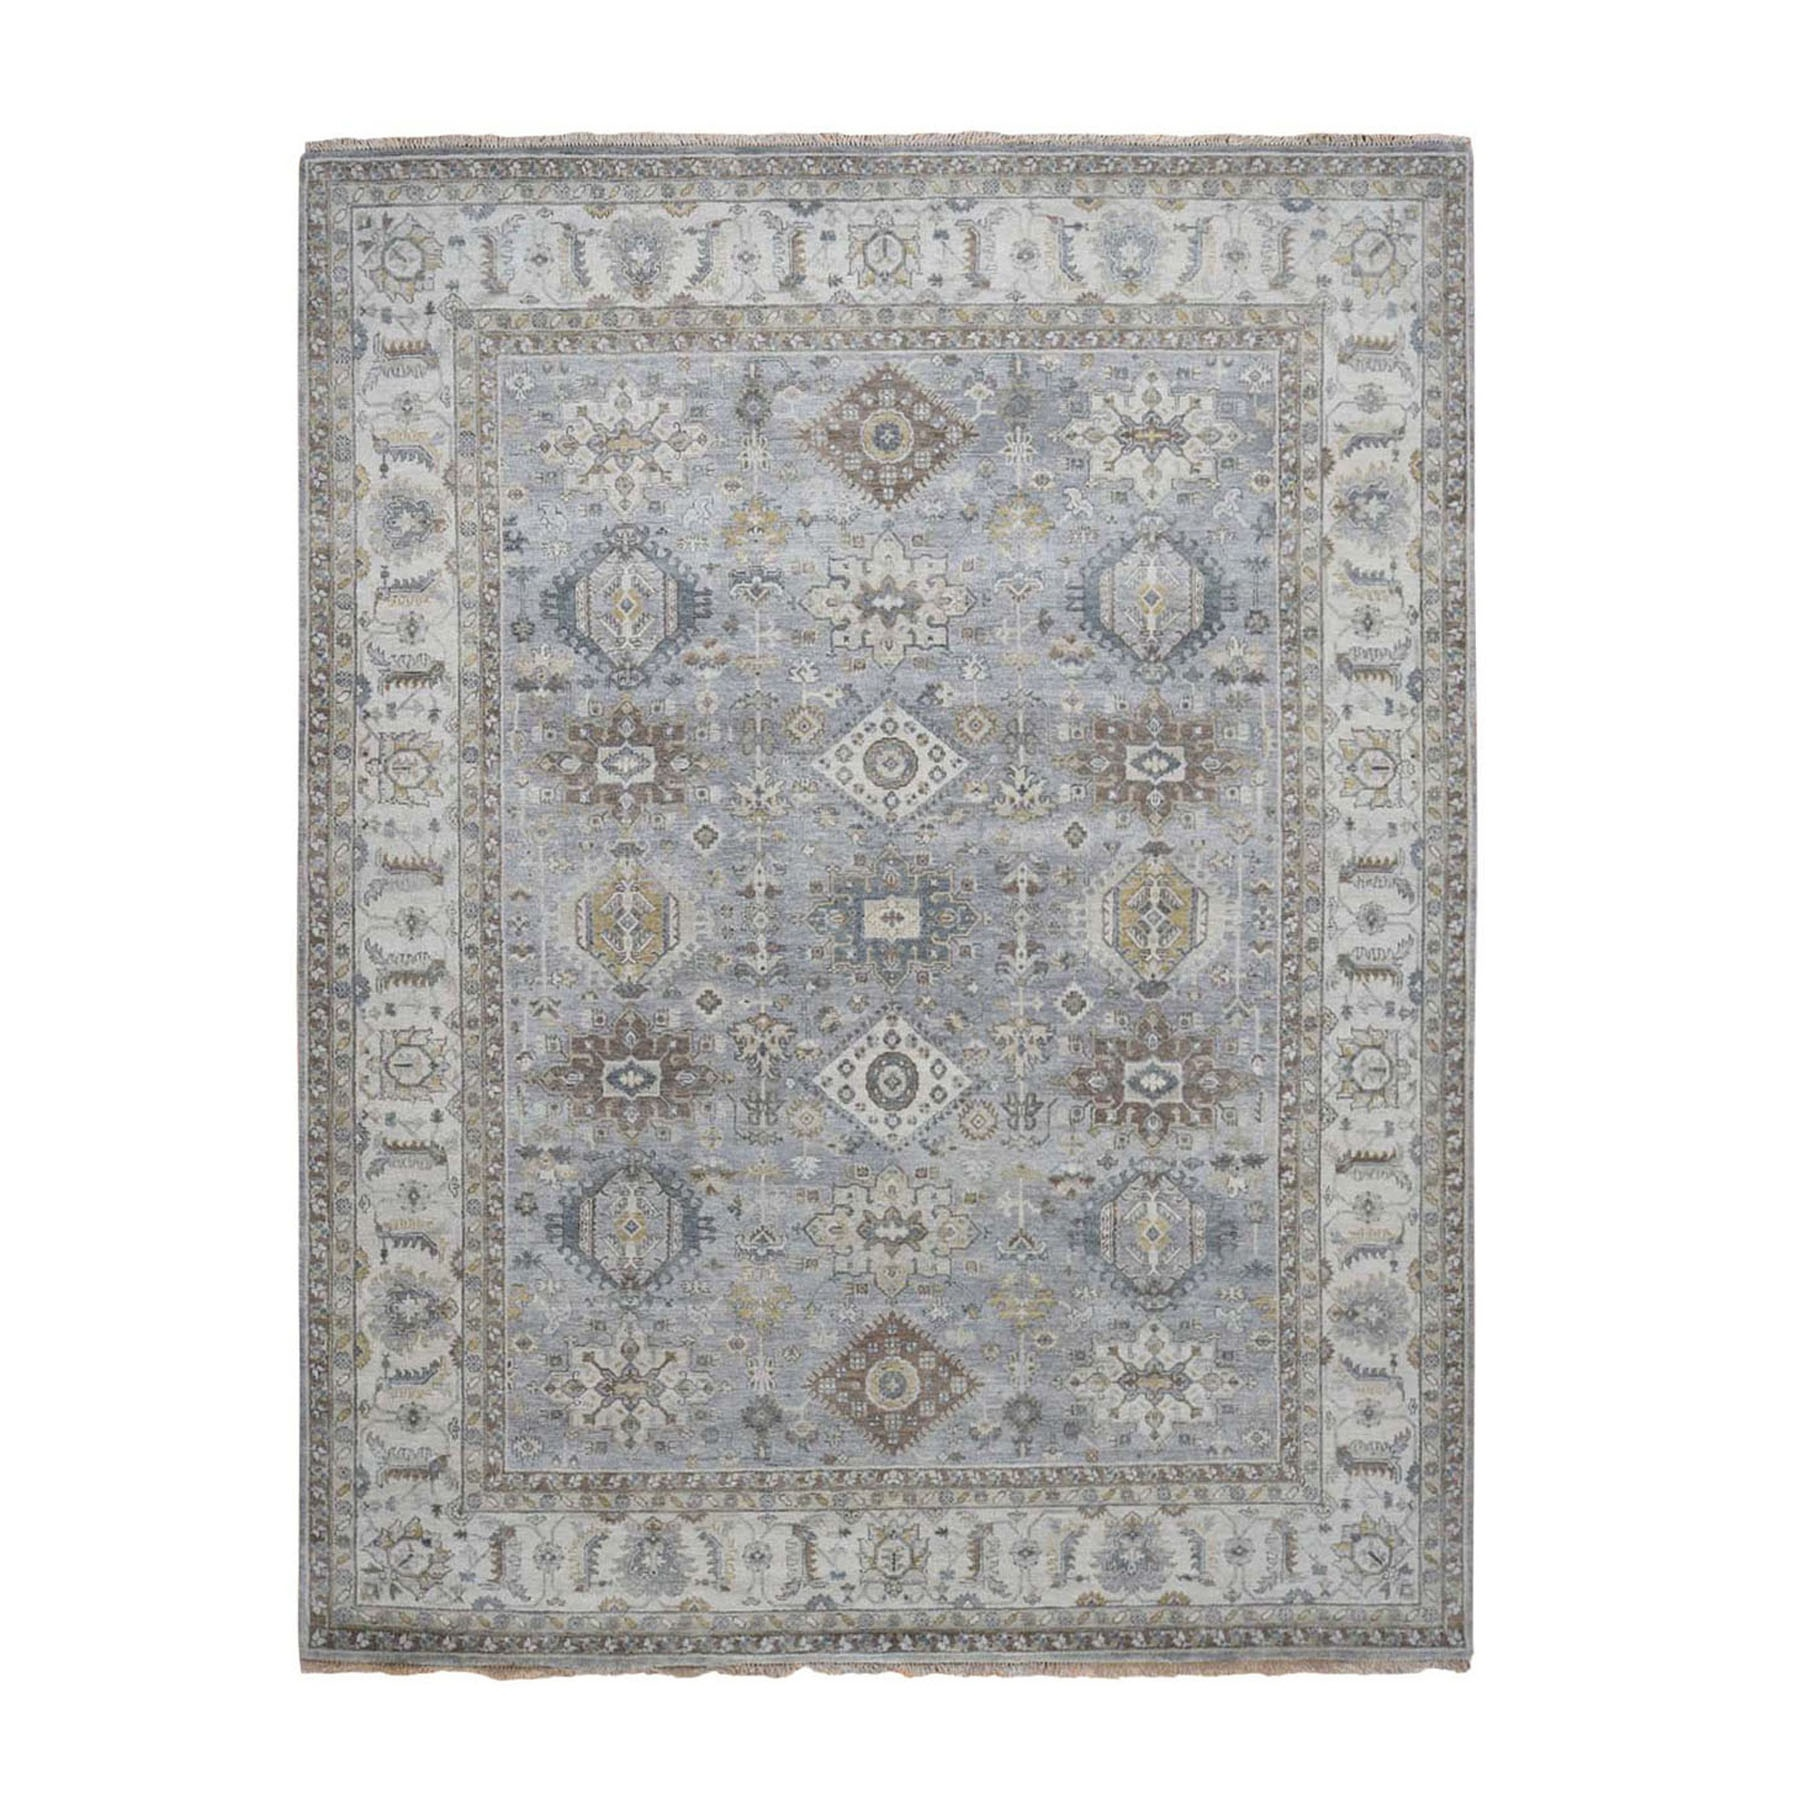 Serapi Heriz and Bakhshayesh Collection Hand Knotted Grey Rug No: 0196474